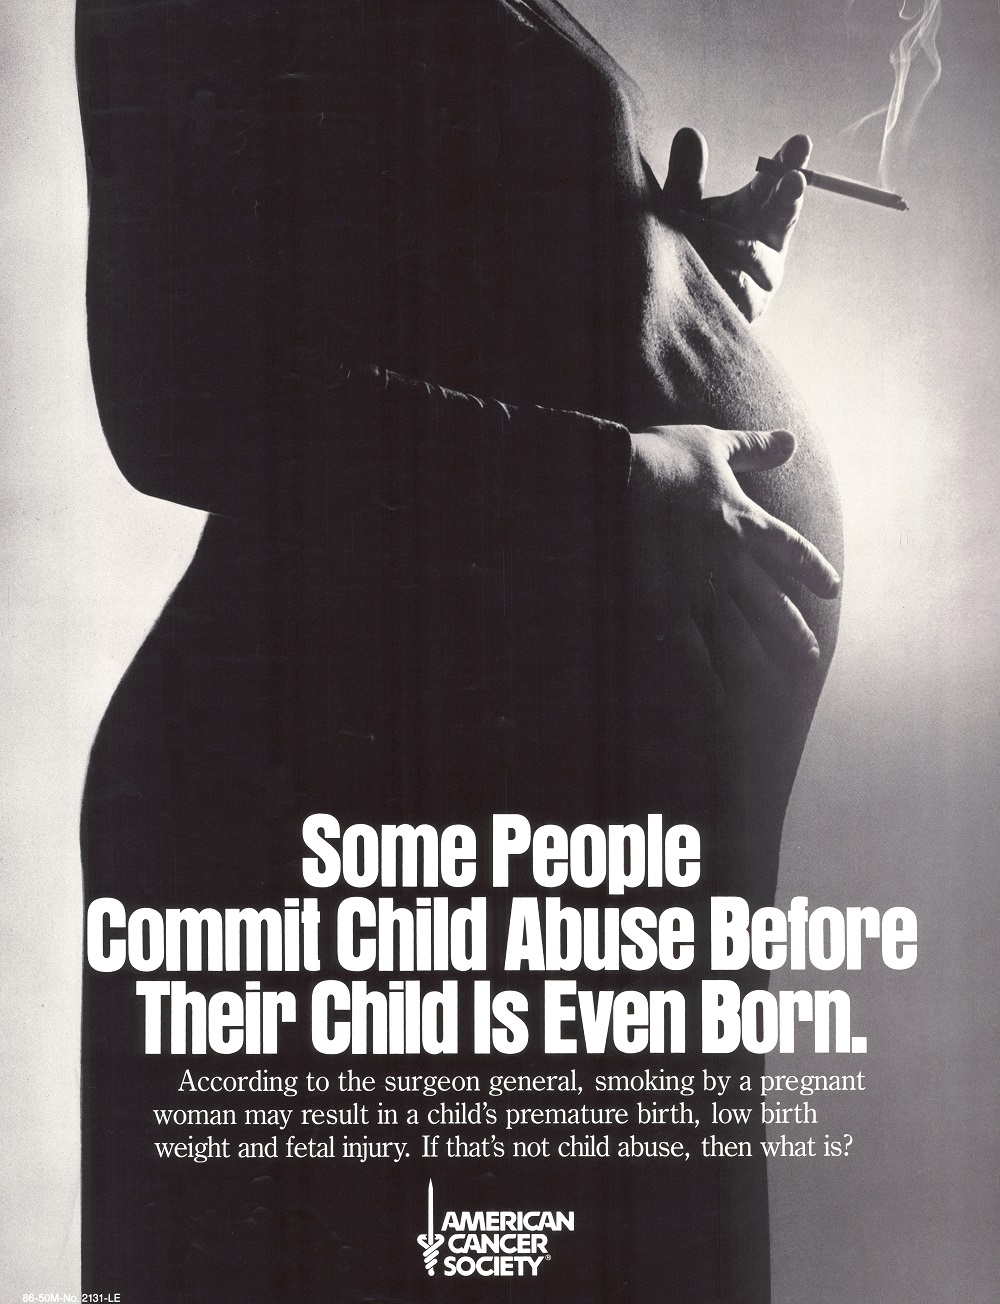 Some People Commit Child Abuse American Cancer Society